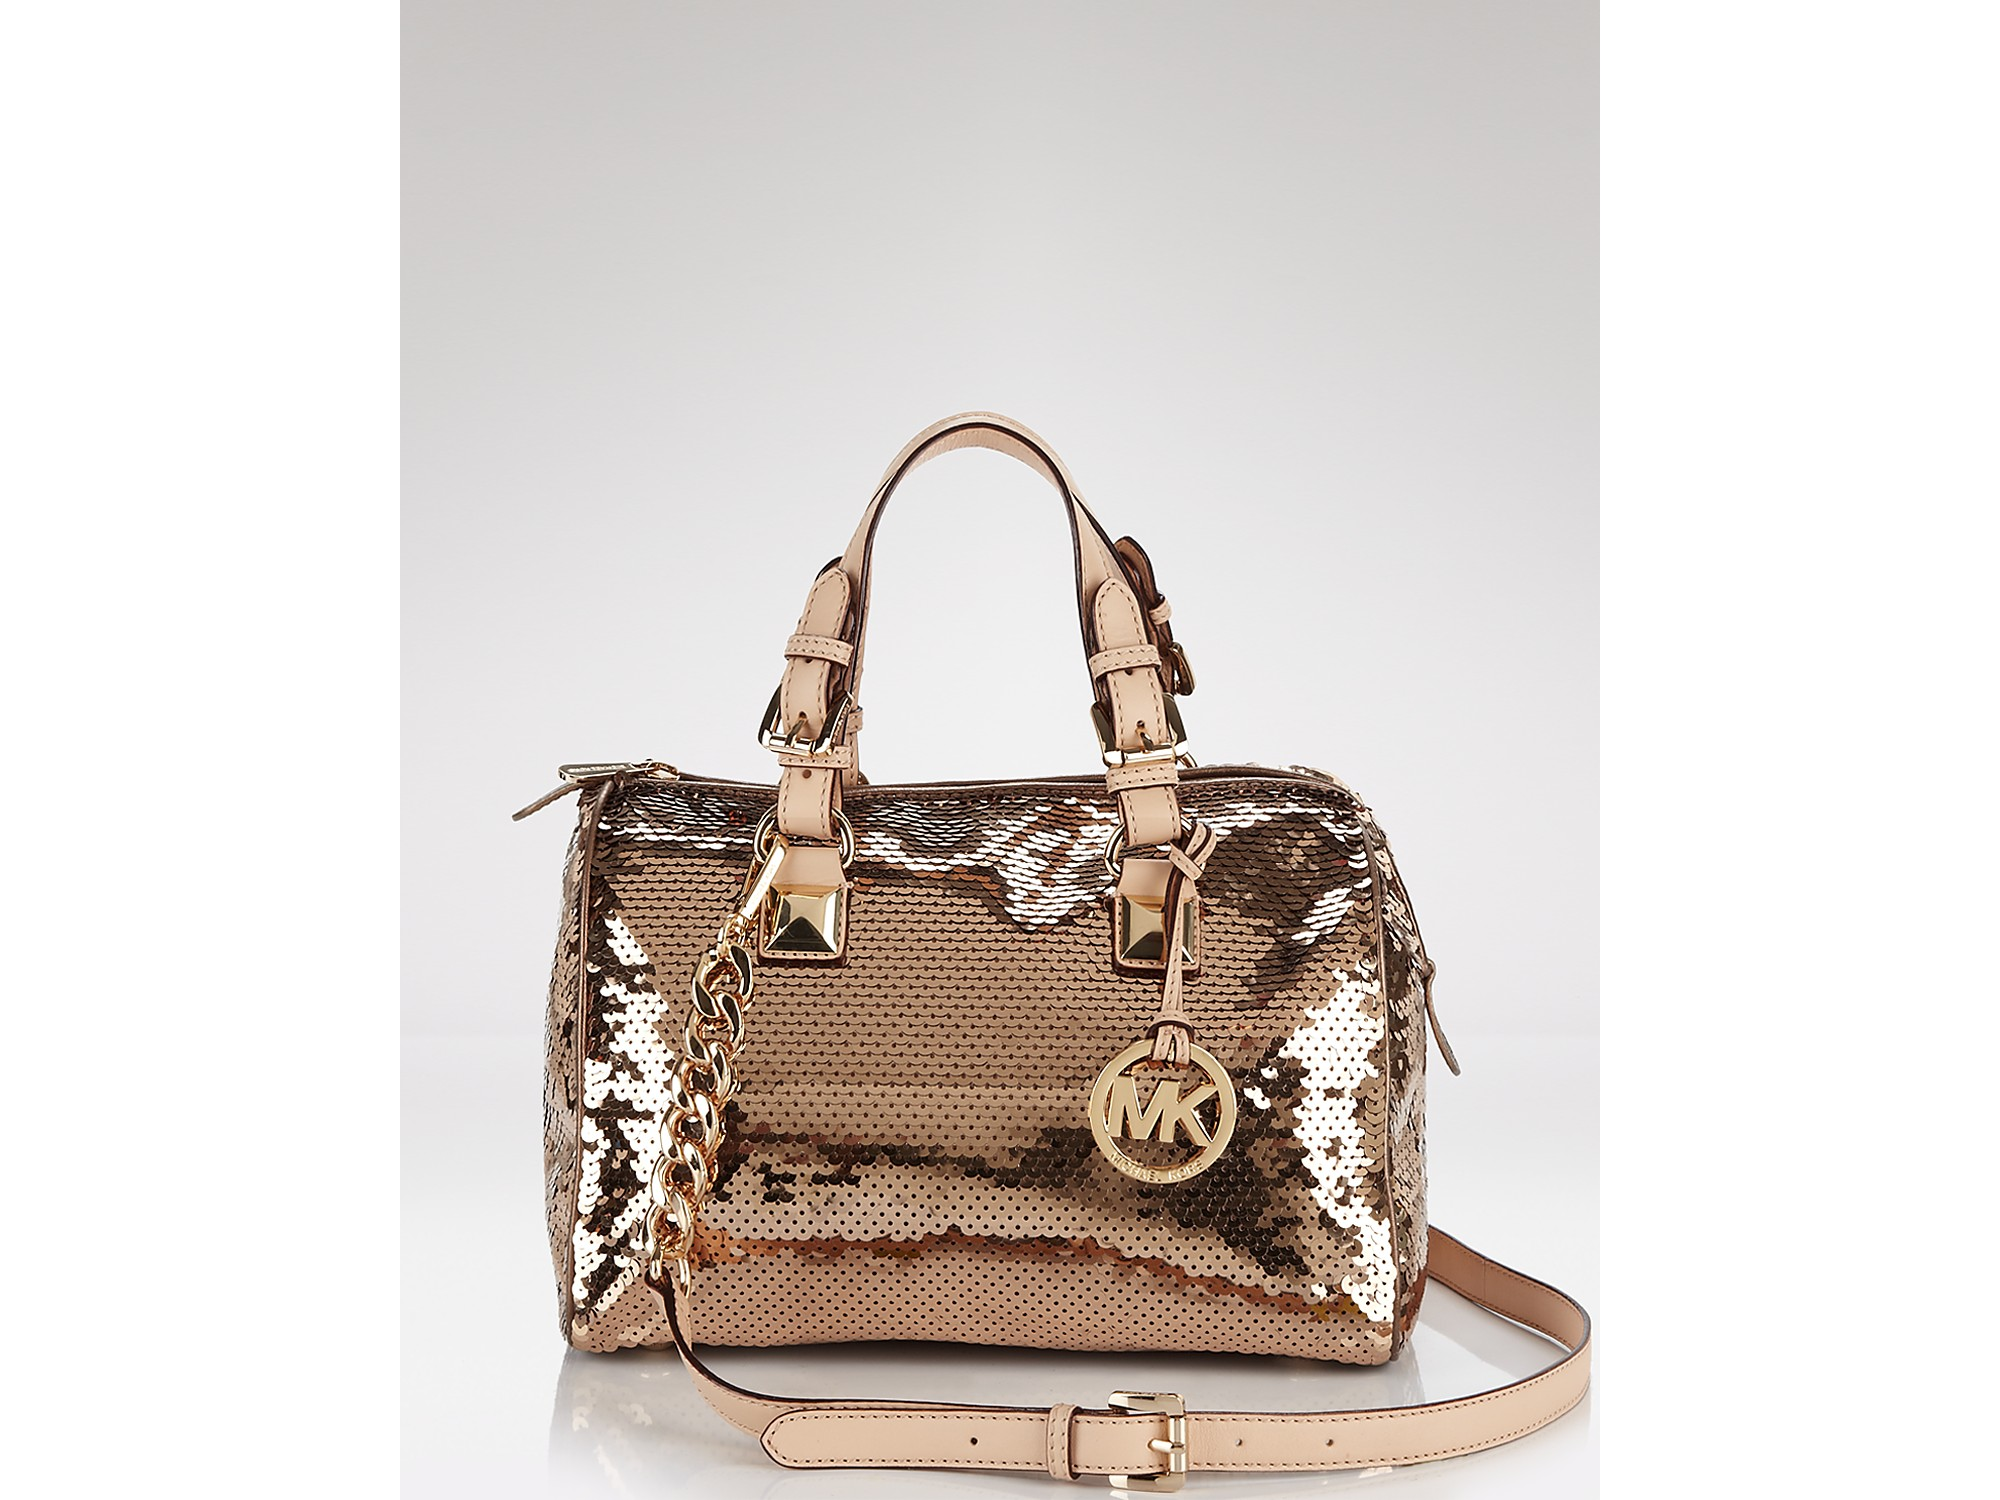 ff4ef3ee0a9d29 Gallery. Previously sold at: Bloomingdale's · Women's Michael Kors Grayson